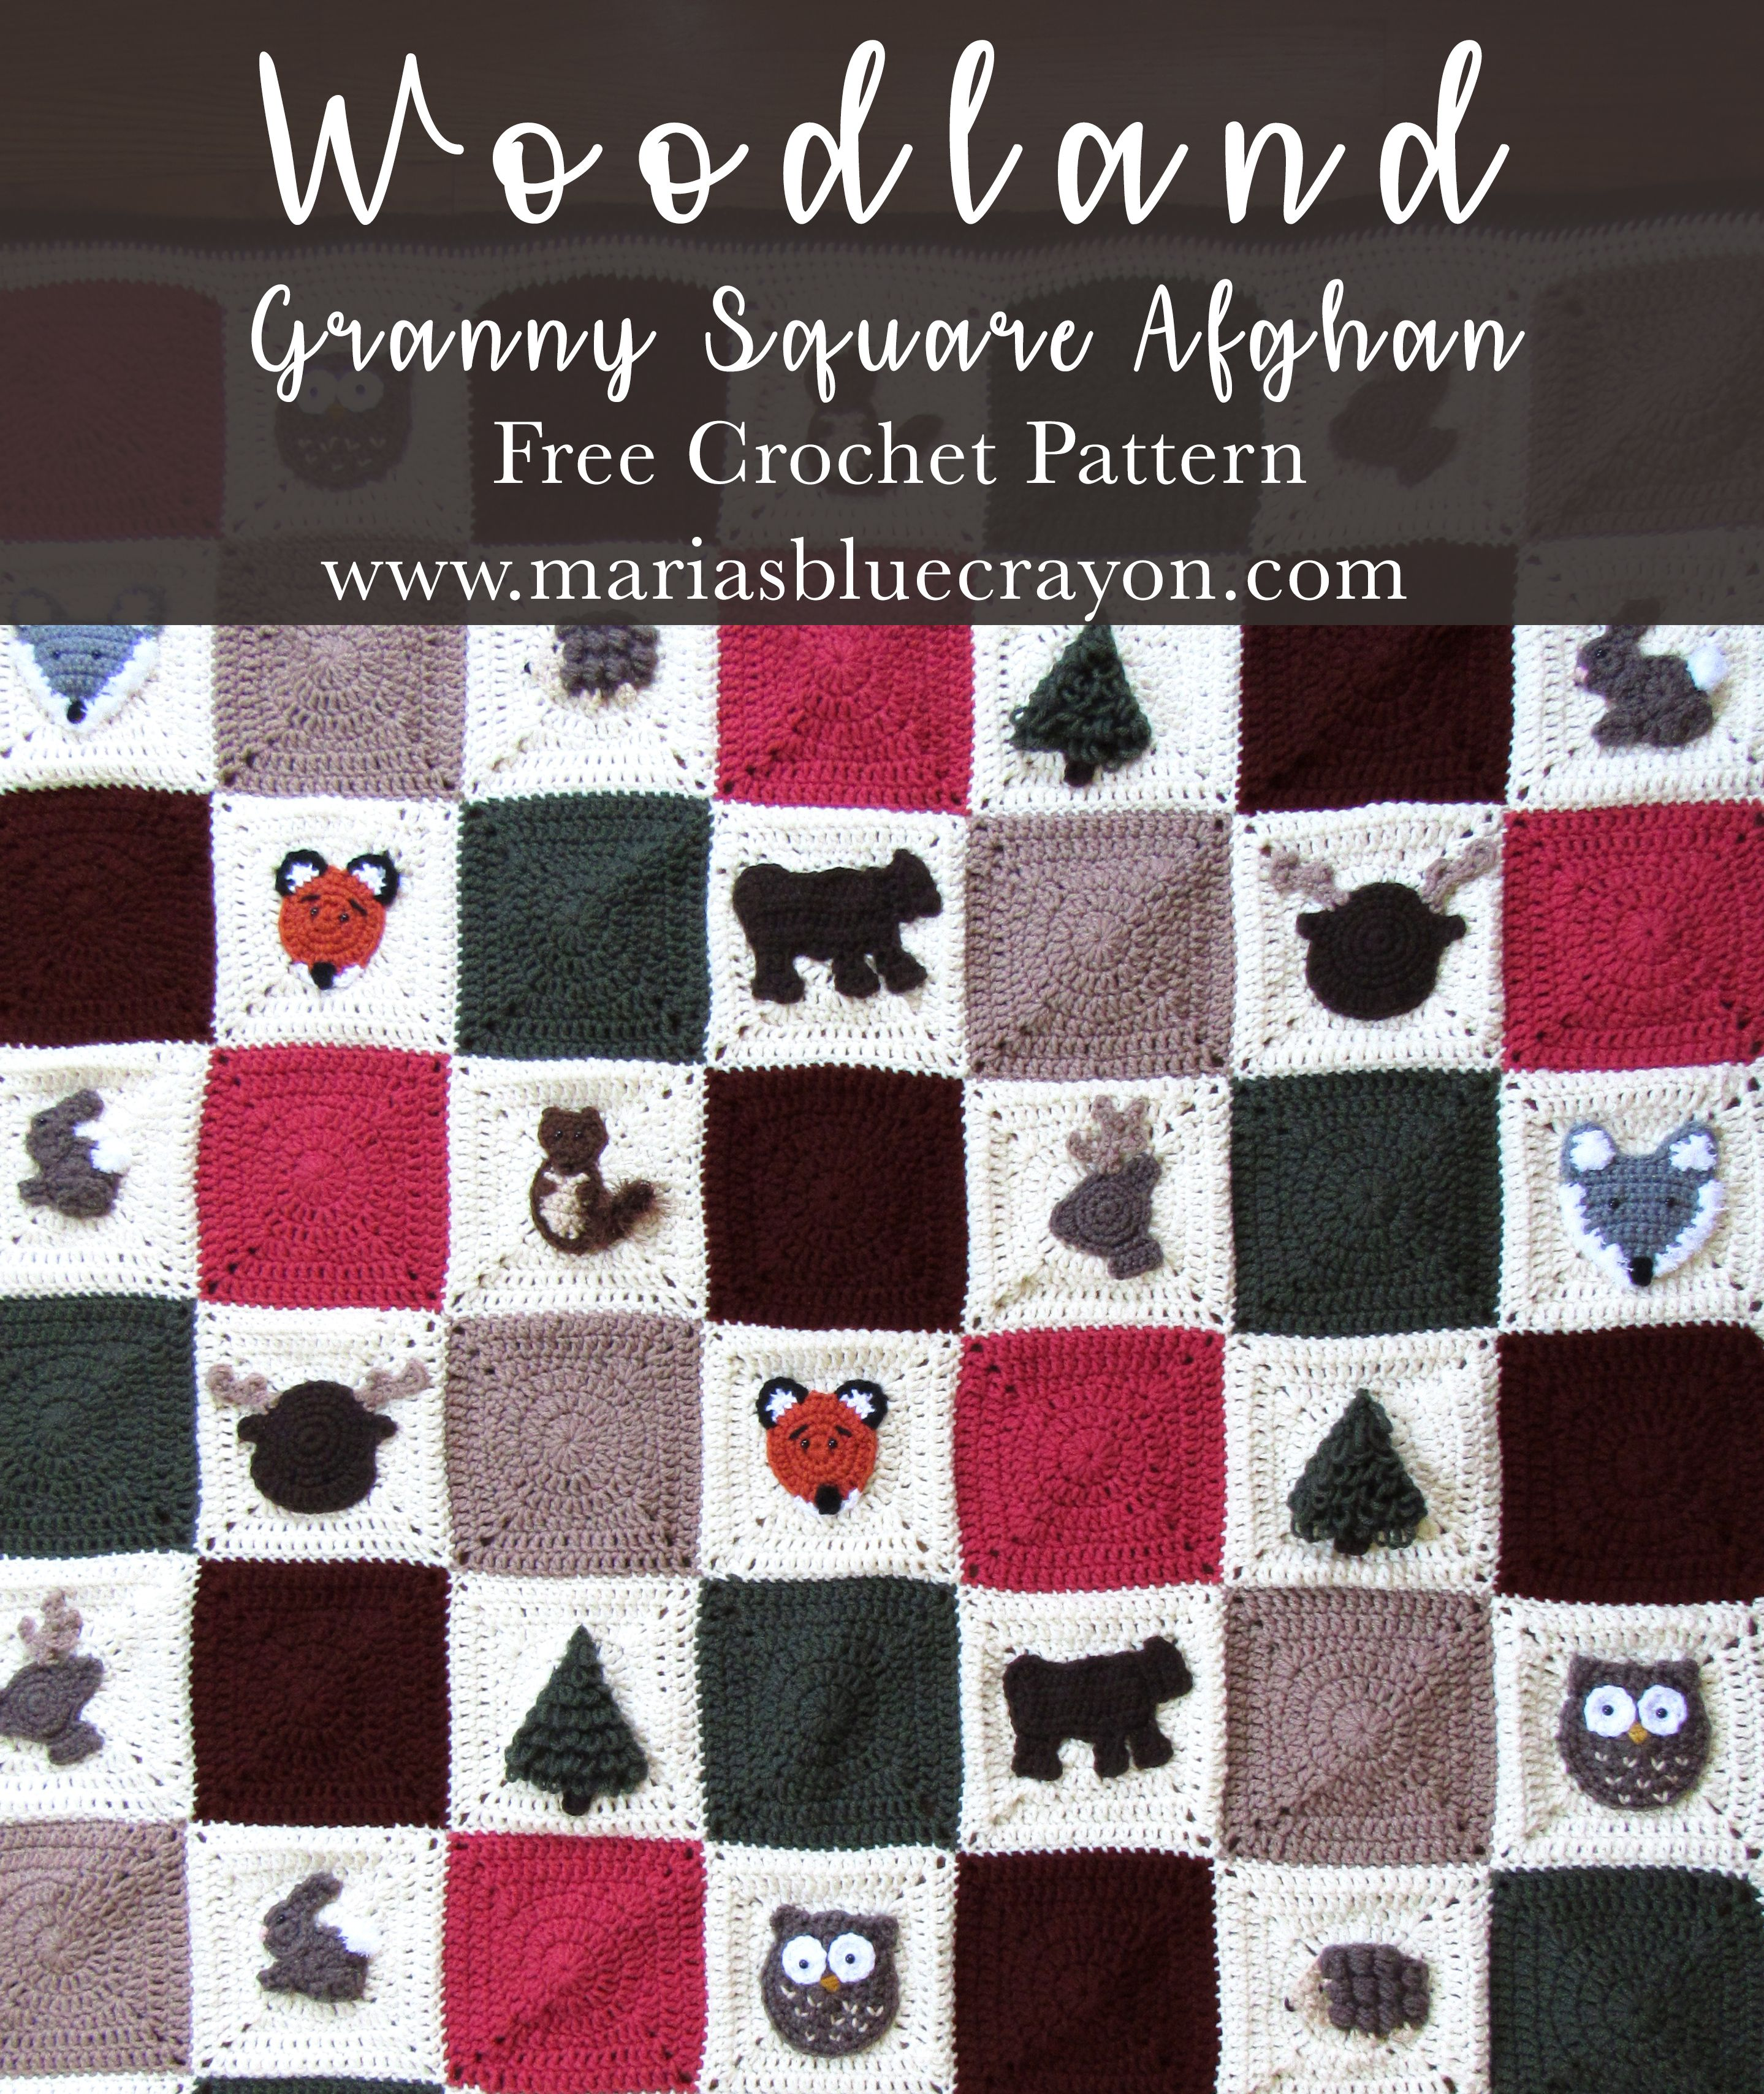 Woodland Granny Square Afghan Free Crochet Pattern | Maria\'s Blue ...